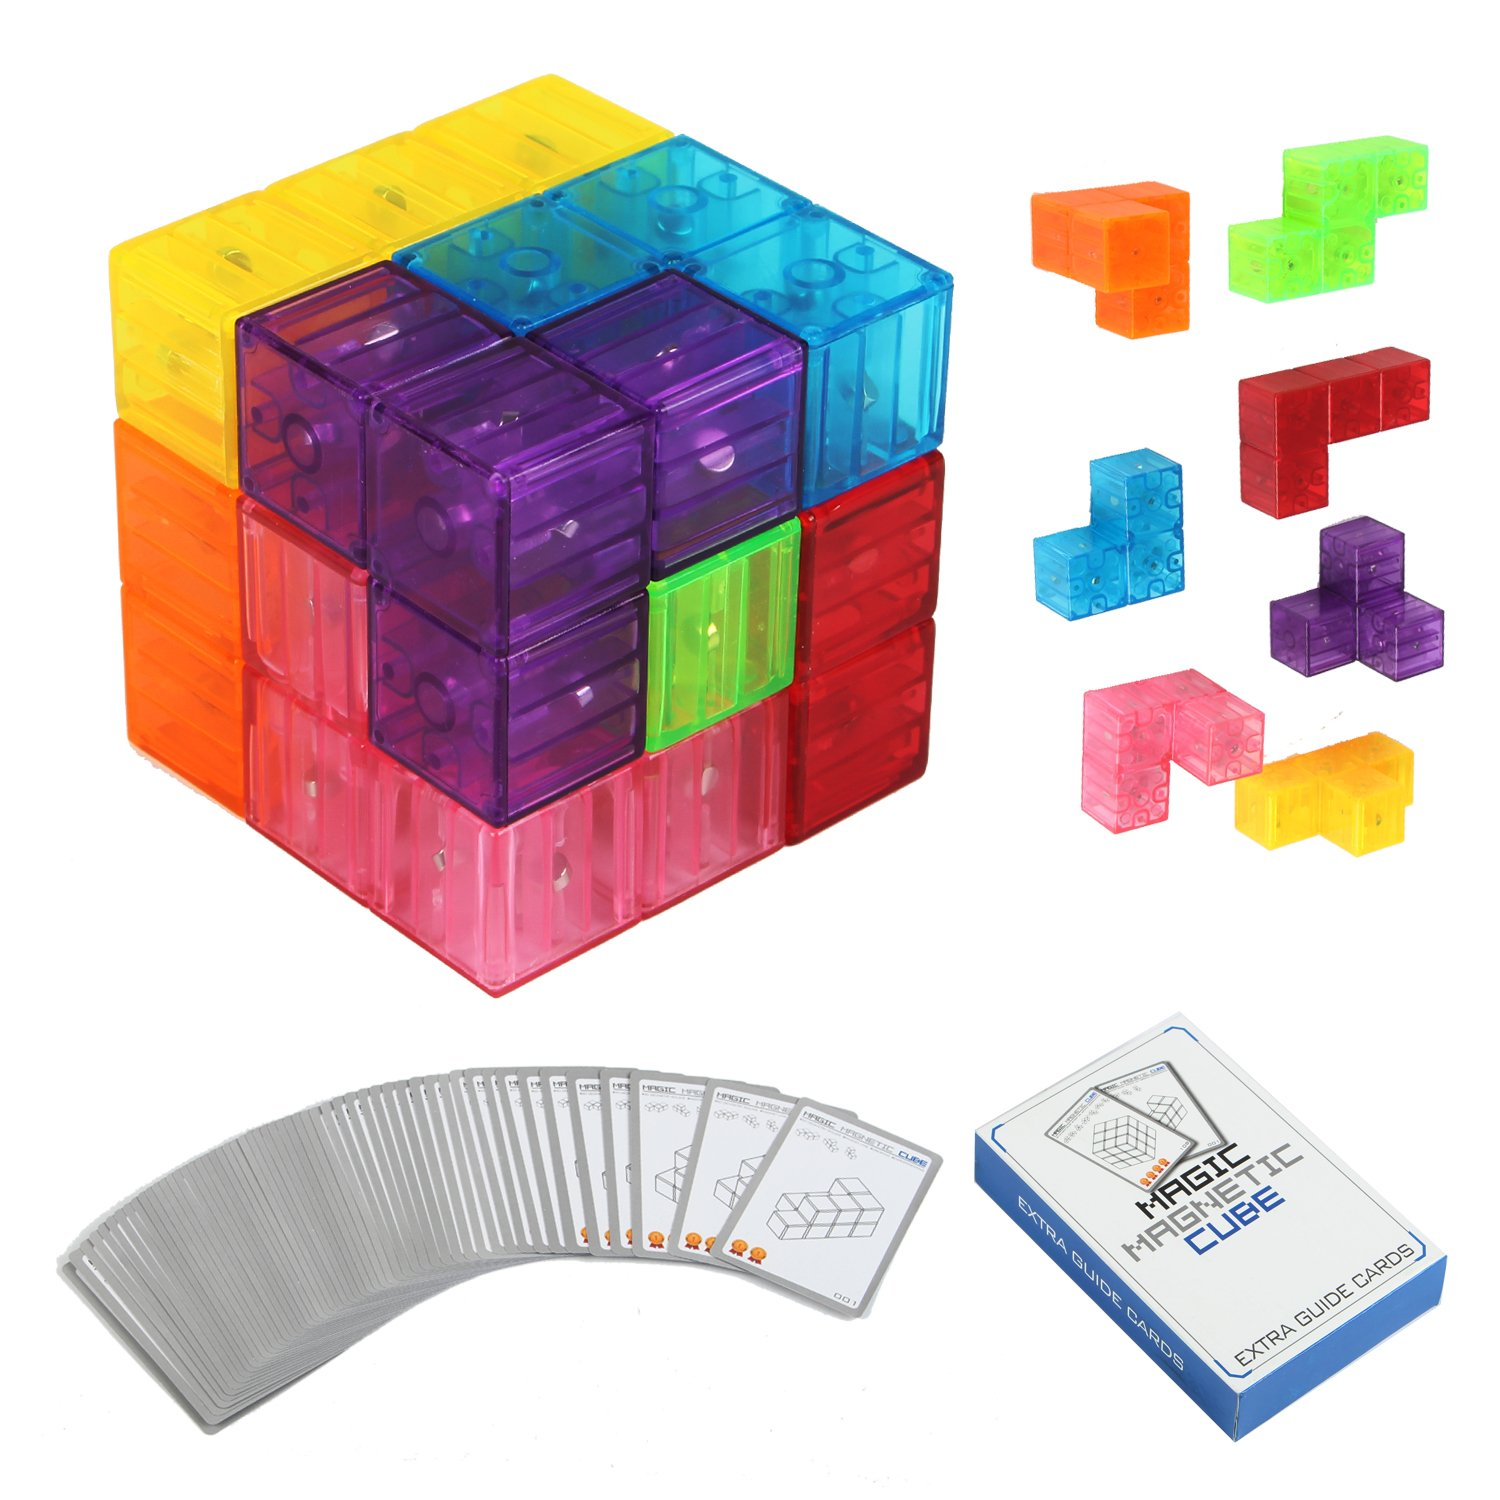 Magnetic Buliding Blocks Magic Magnetic Cube for Kids-7pcs Magnetic Bricks and 54 Smart Cards Braind Toy/Brainteaser Puzzles for Develop Kids Intelligence by VC-HOME